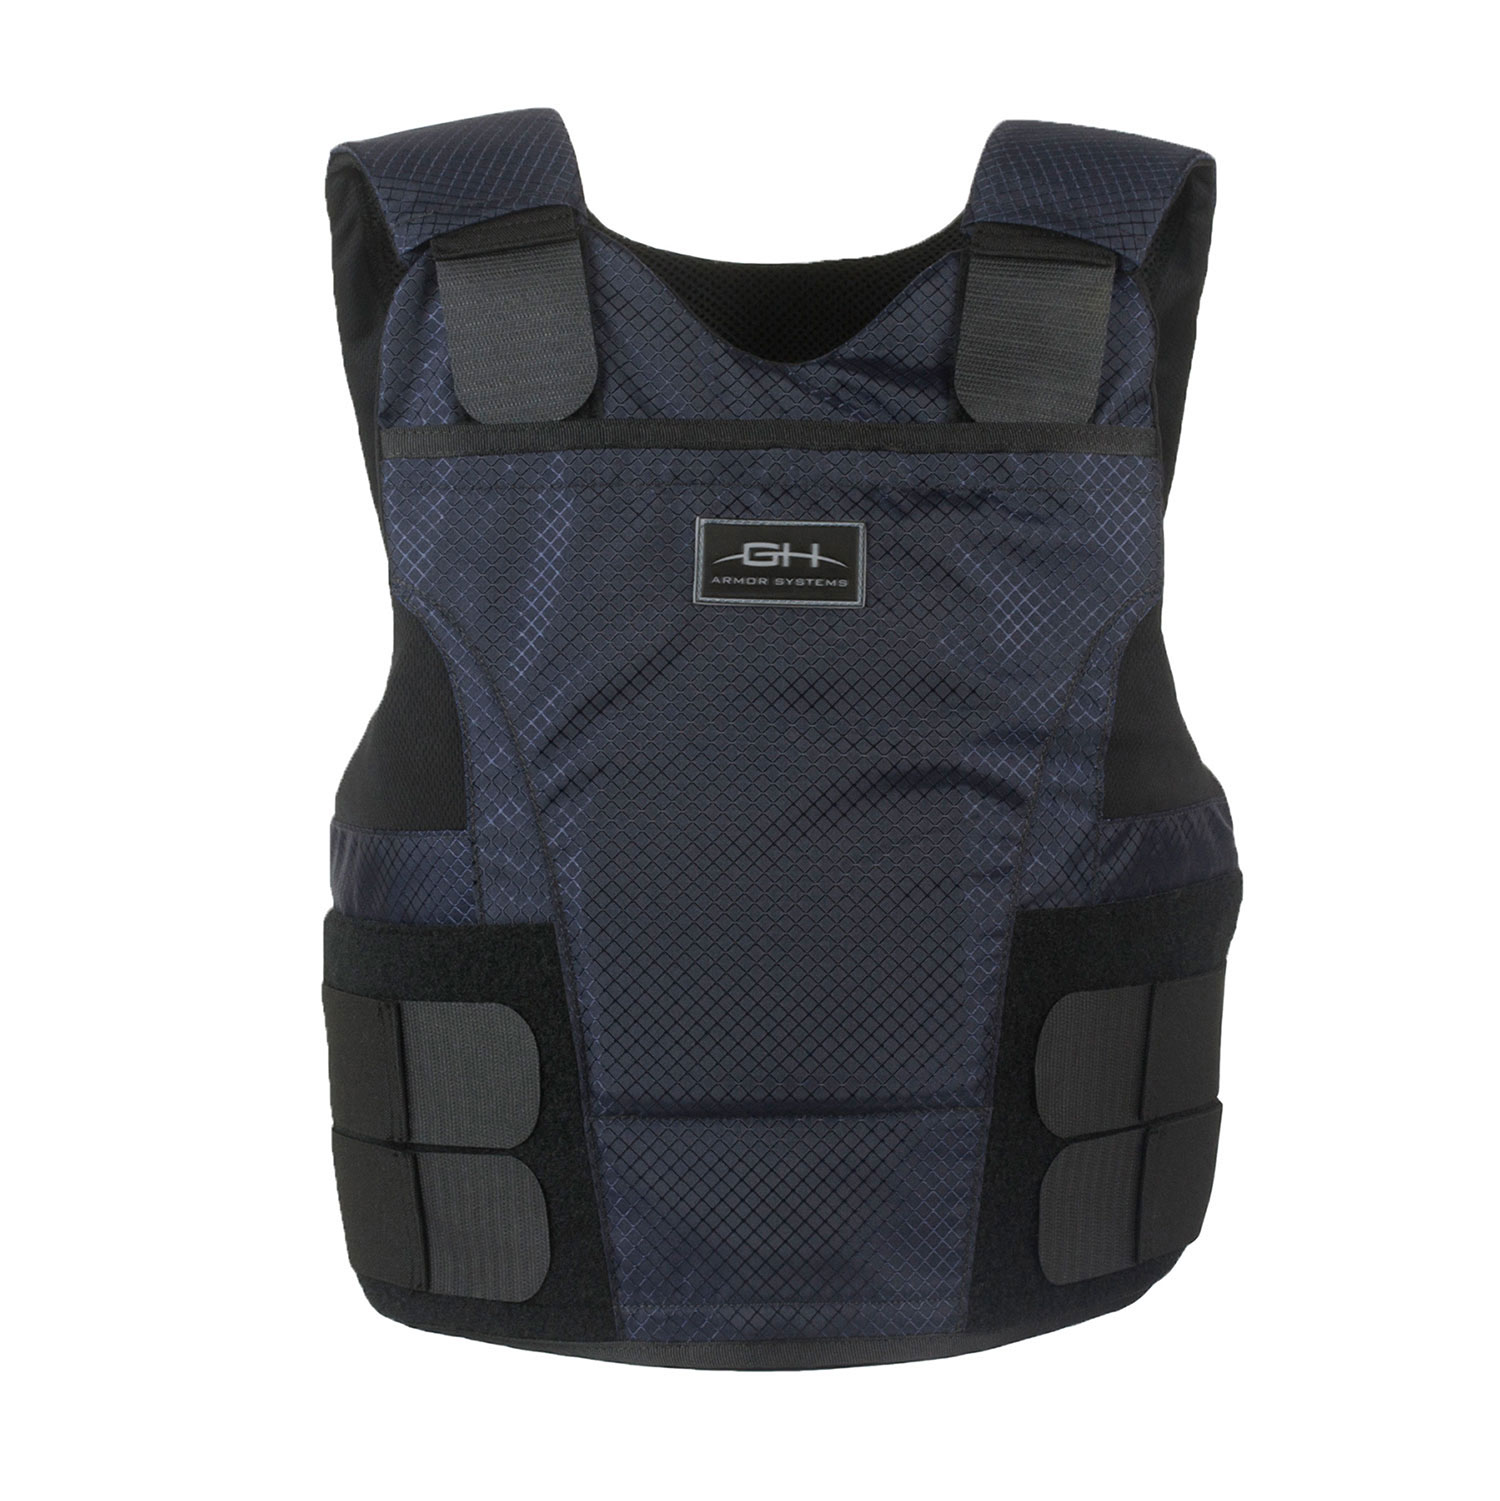 GH Armor Pro II Body Armor Package